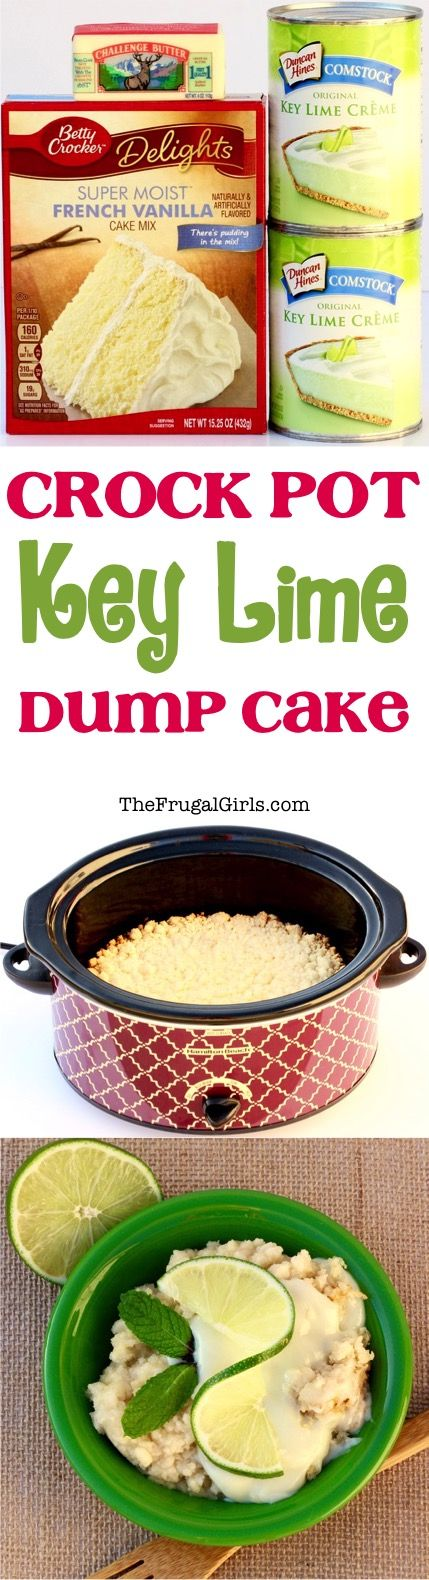 Easy dump recipes